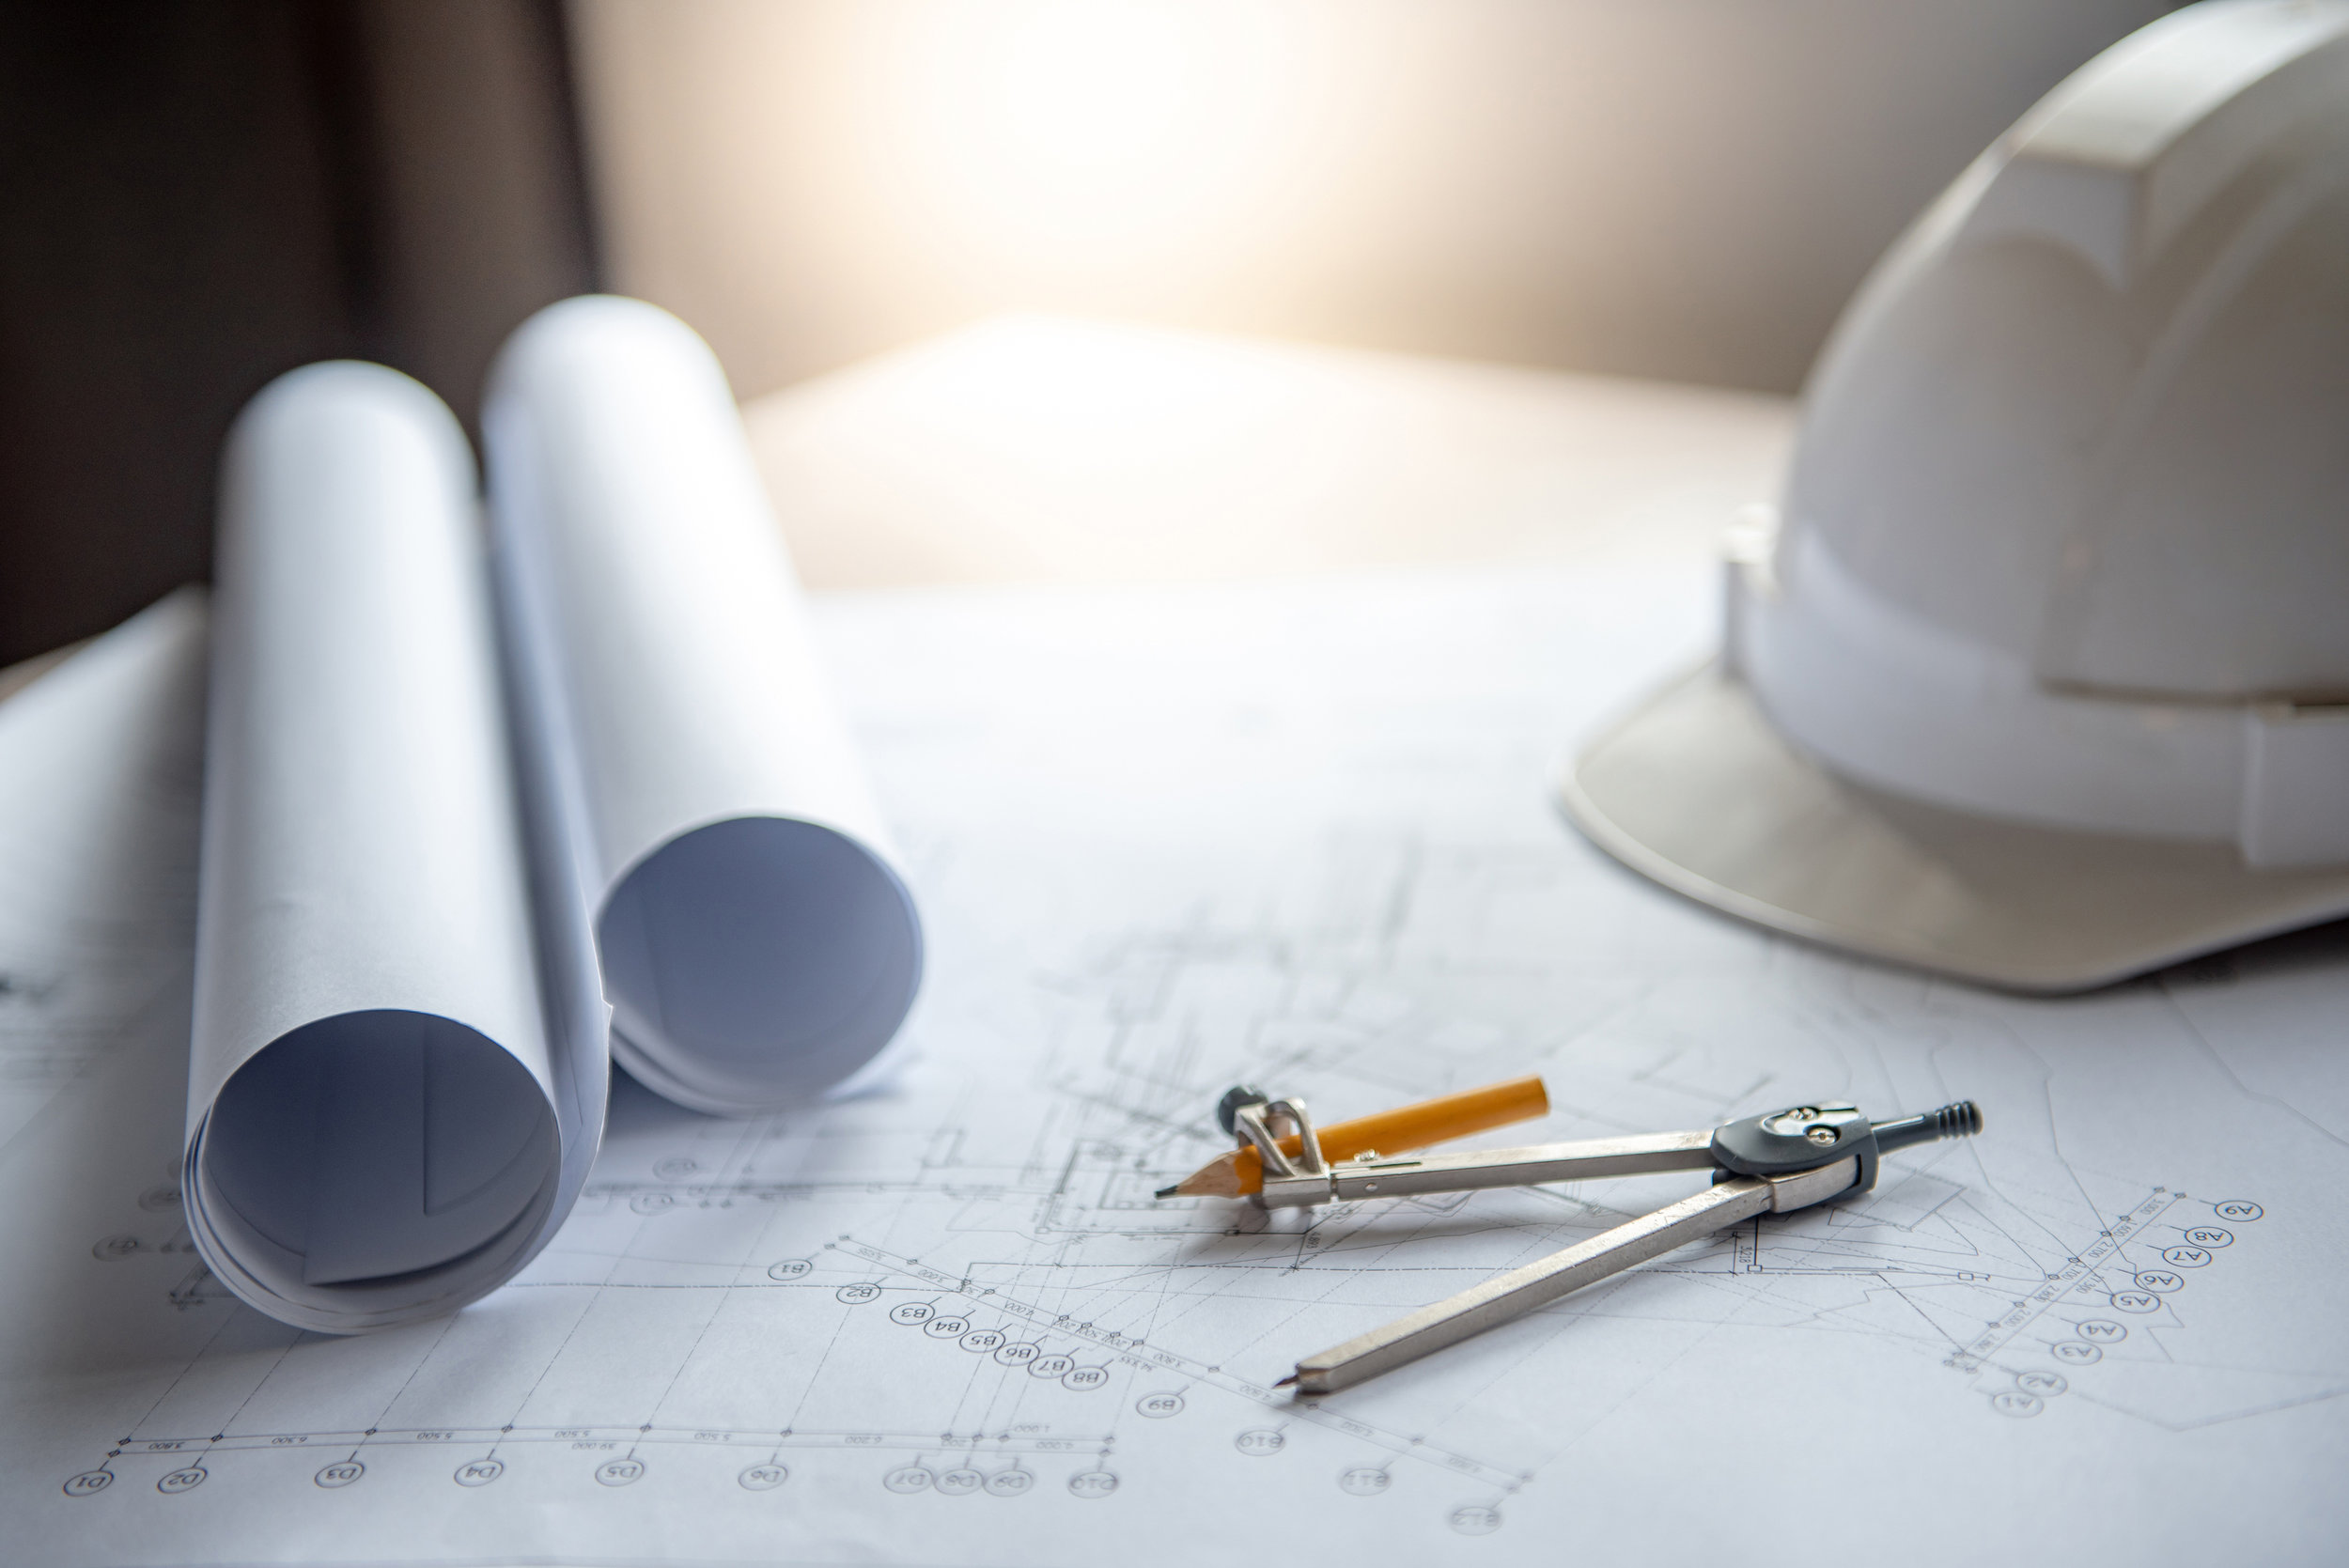 Services - Explore some of our Civil Engineering design and consultation services.